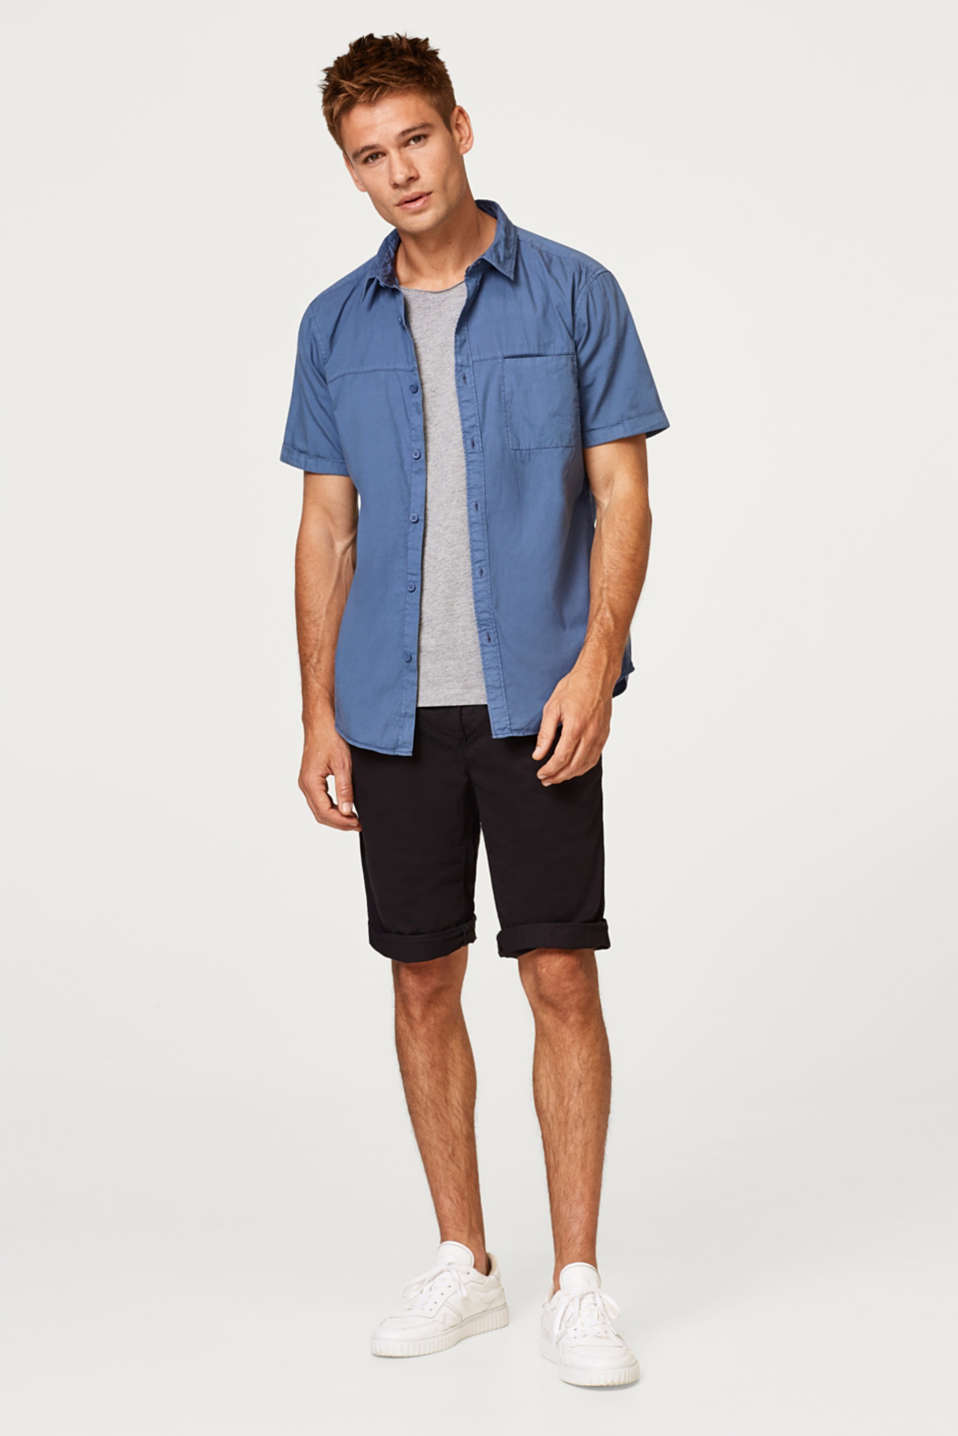 Fitted short sleeve shirt in 100% cotton